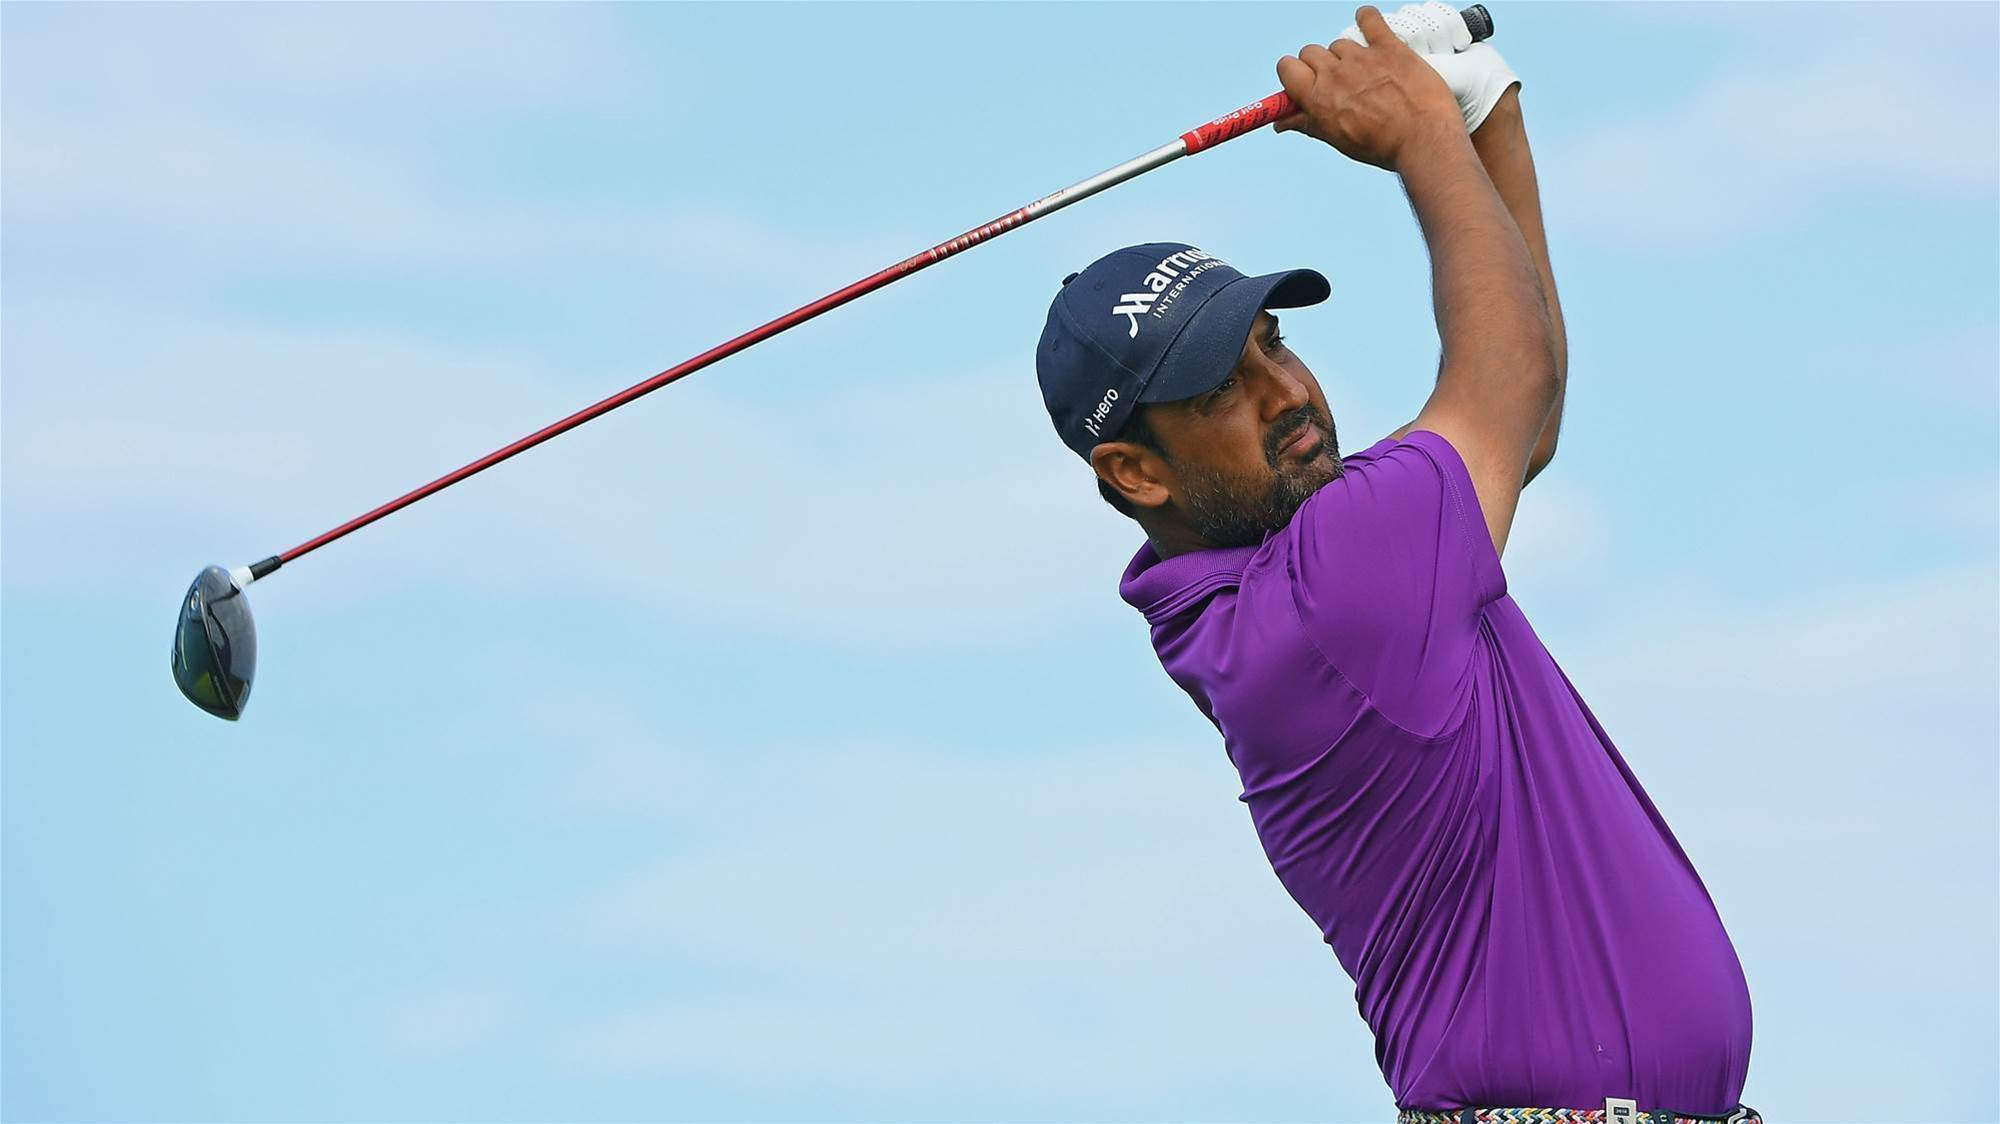 Kapur hopes to soar at national Open